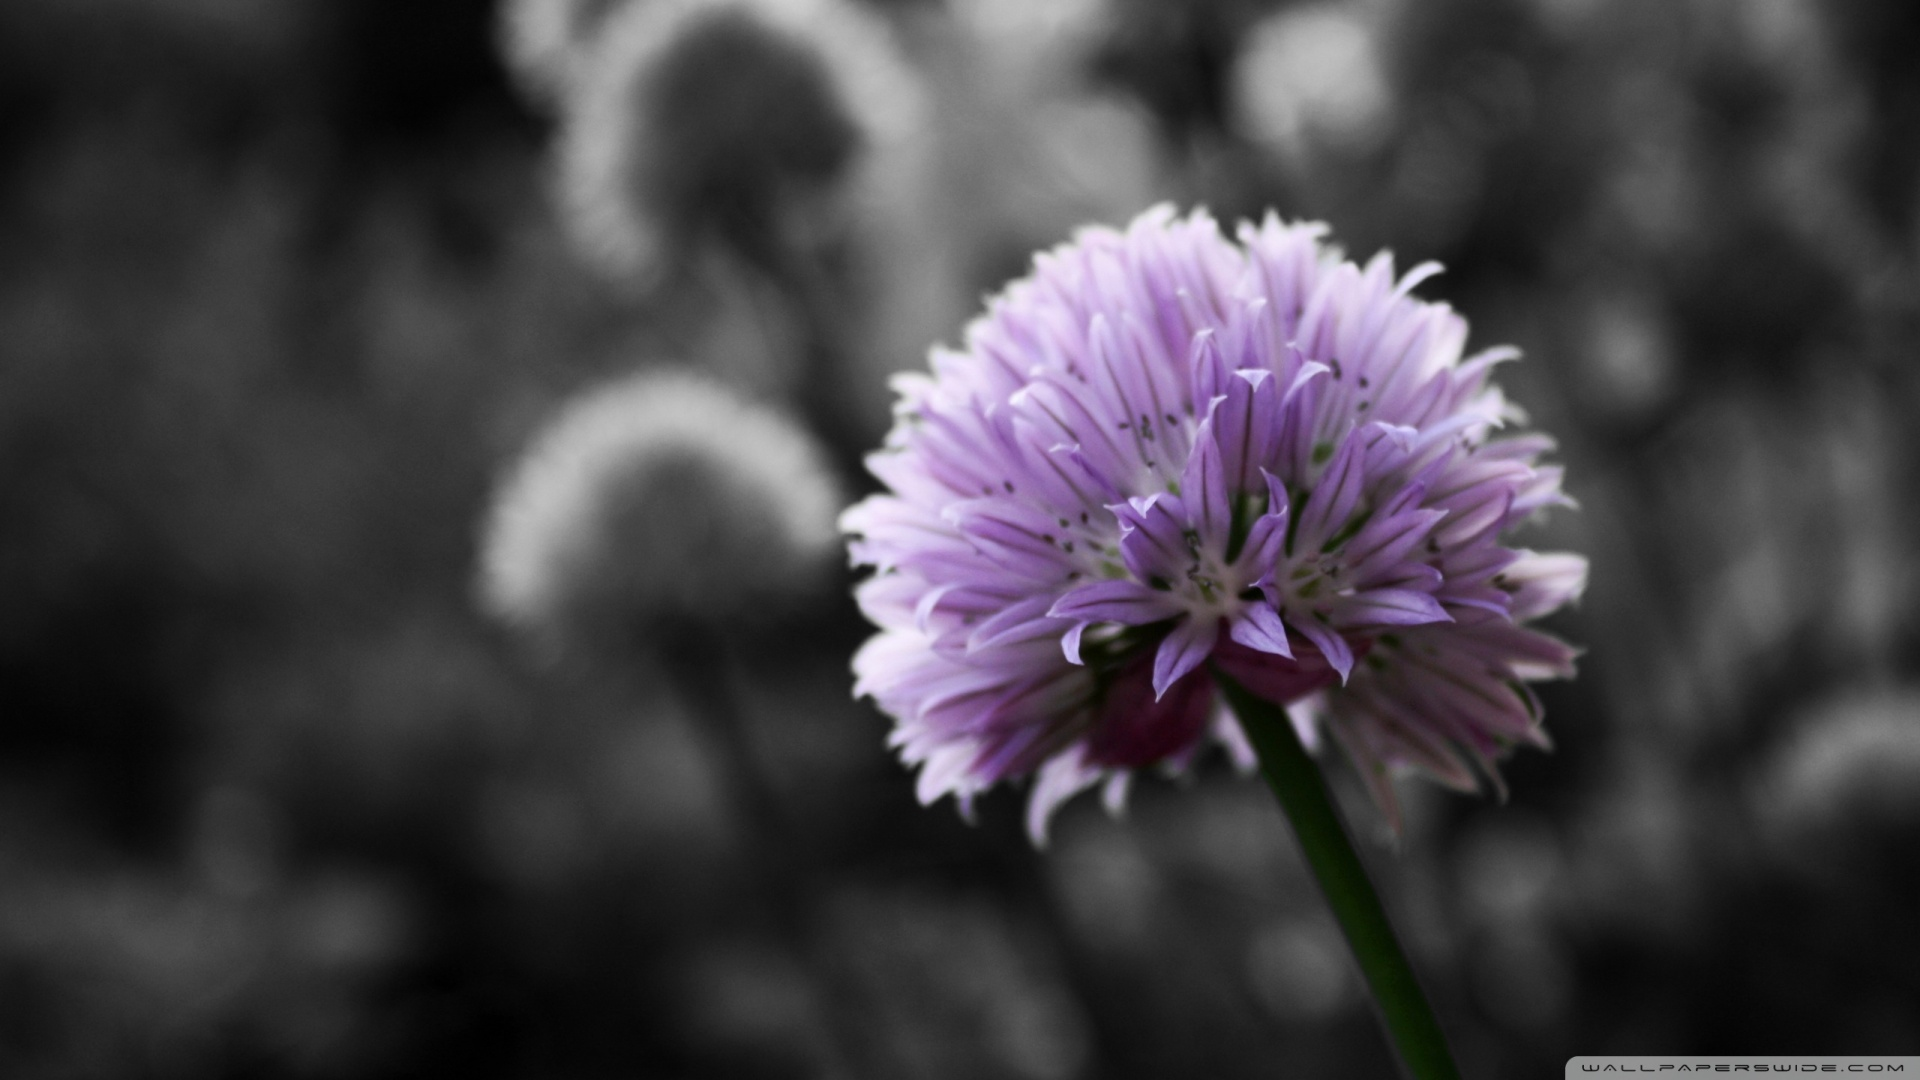 Black And White Images Of Flowers 28 Hd Wallpaper